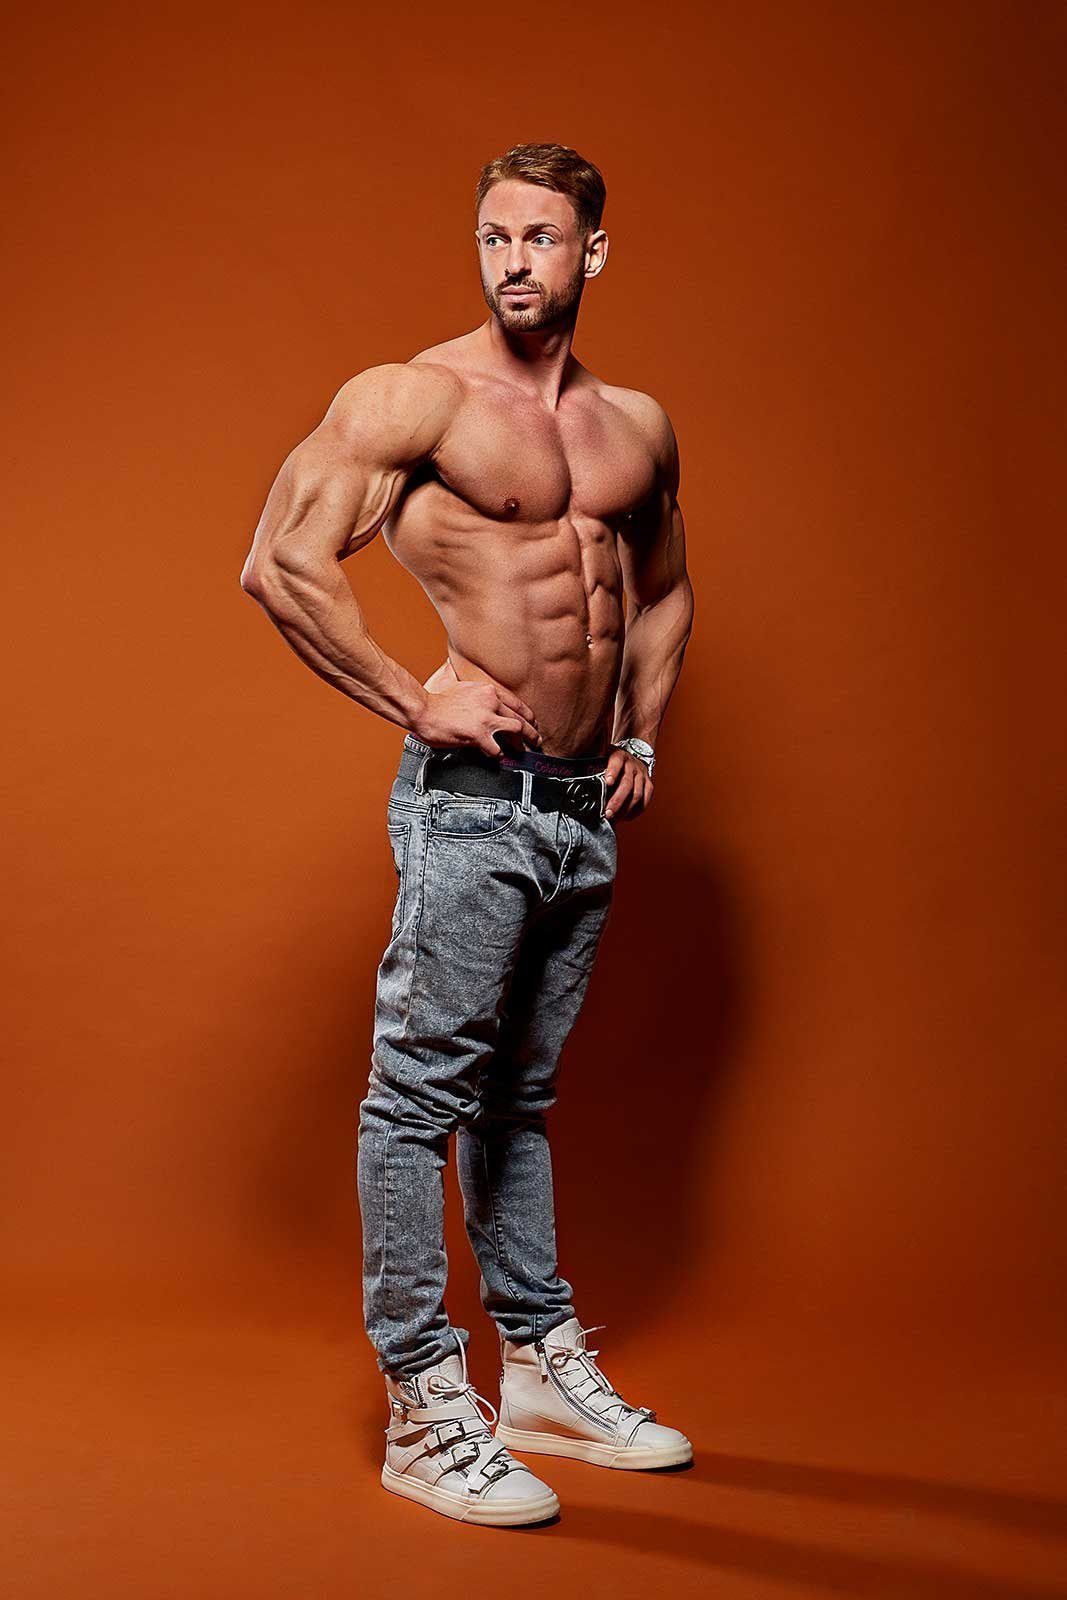 Ross-Kotzi-Fitness-Shoot-Sep15-0684-edit-HR